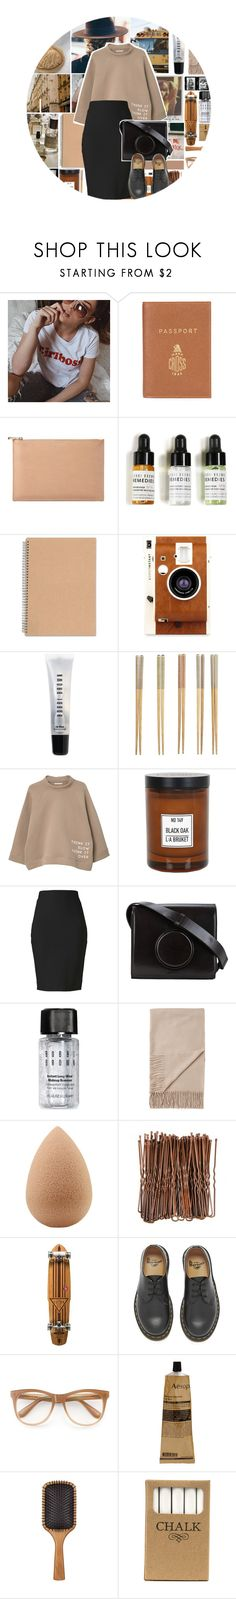 """""""Think it slow think it over.( check d )"""" by rhianna-alexandre on Polyvore featuring Barrie, Aspinal of London, Bobbi Brown Cosmetics, Made of Me, LØMO, Crate and Barrel, MANGO, L:A Bruket, Winser London and Lemaire"""